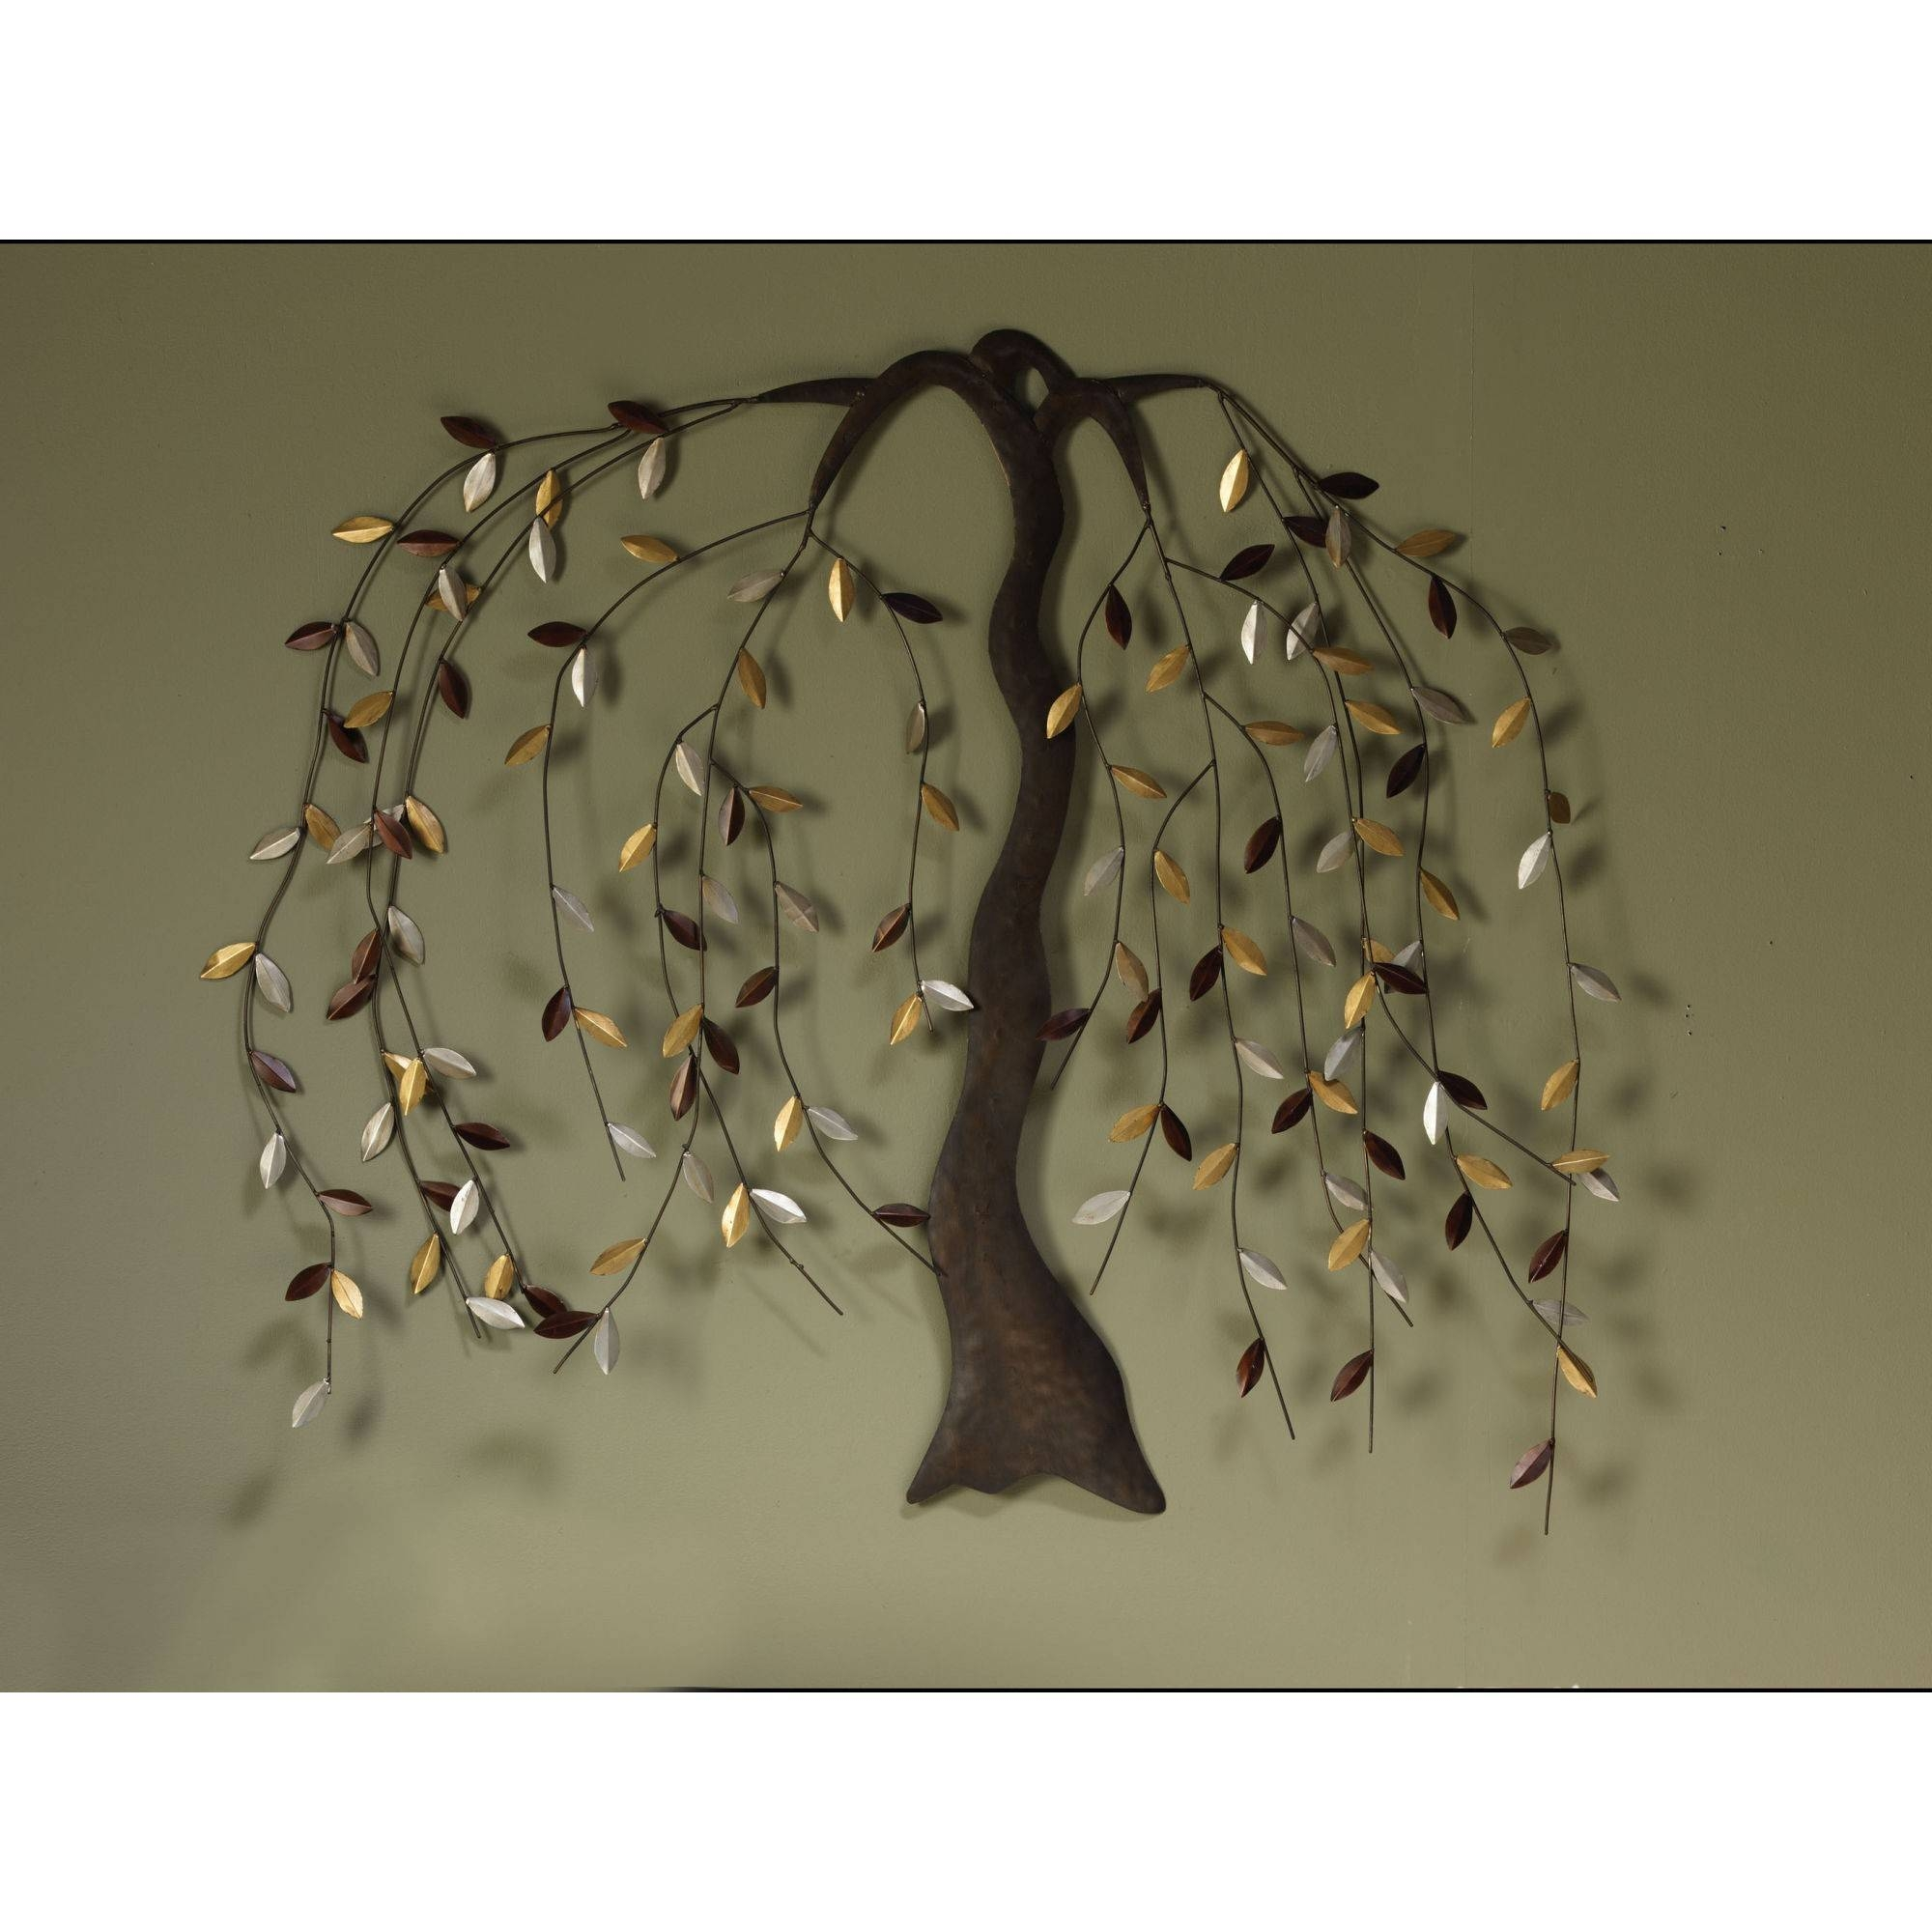 Magnificent Watch Iron Wall Decor Metal Metal Wall Art Iron Wall Pertaining To Most Up To Date Large Metal Wall Art Decor (View 8 of 20)